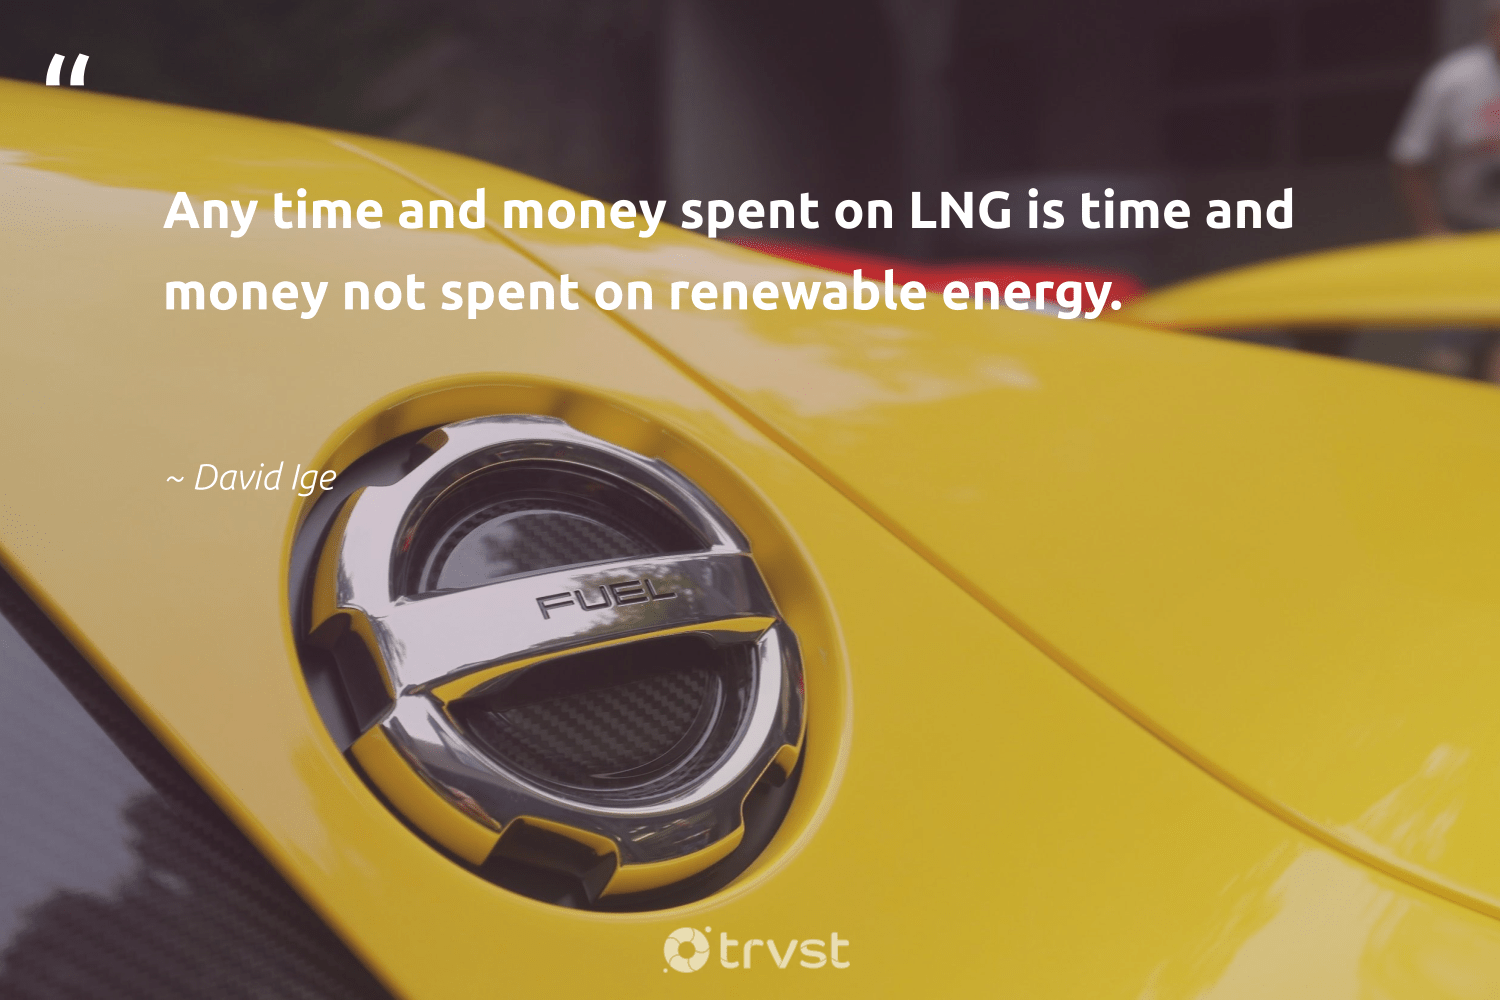 """""""Any time and money spent on LNG is time and money not spent on renewable energy.""""  - David Ige #trvst #quotes #renewableenergy #energy #renewable #renewables #cleanenergy #environment #globalwarming #socialchange #100percentrenewable #switchfuelenergy"""